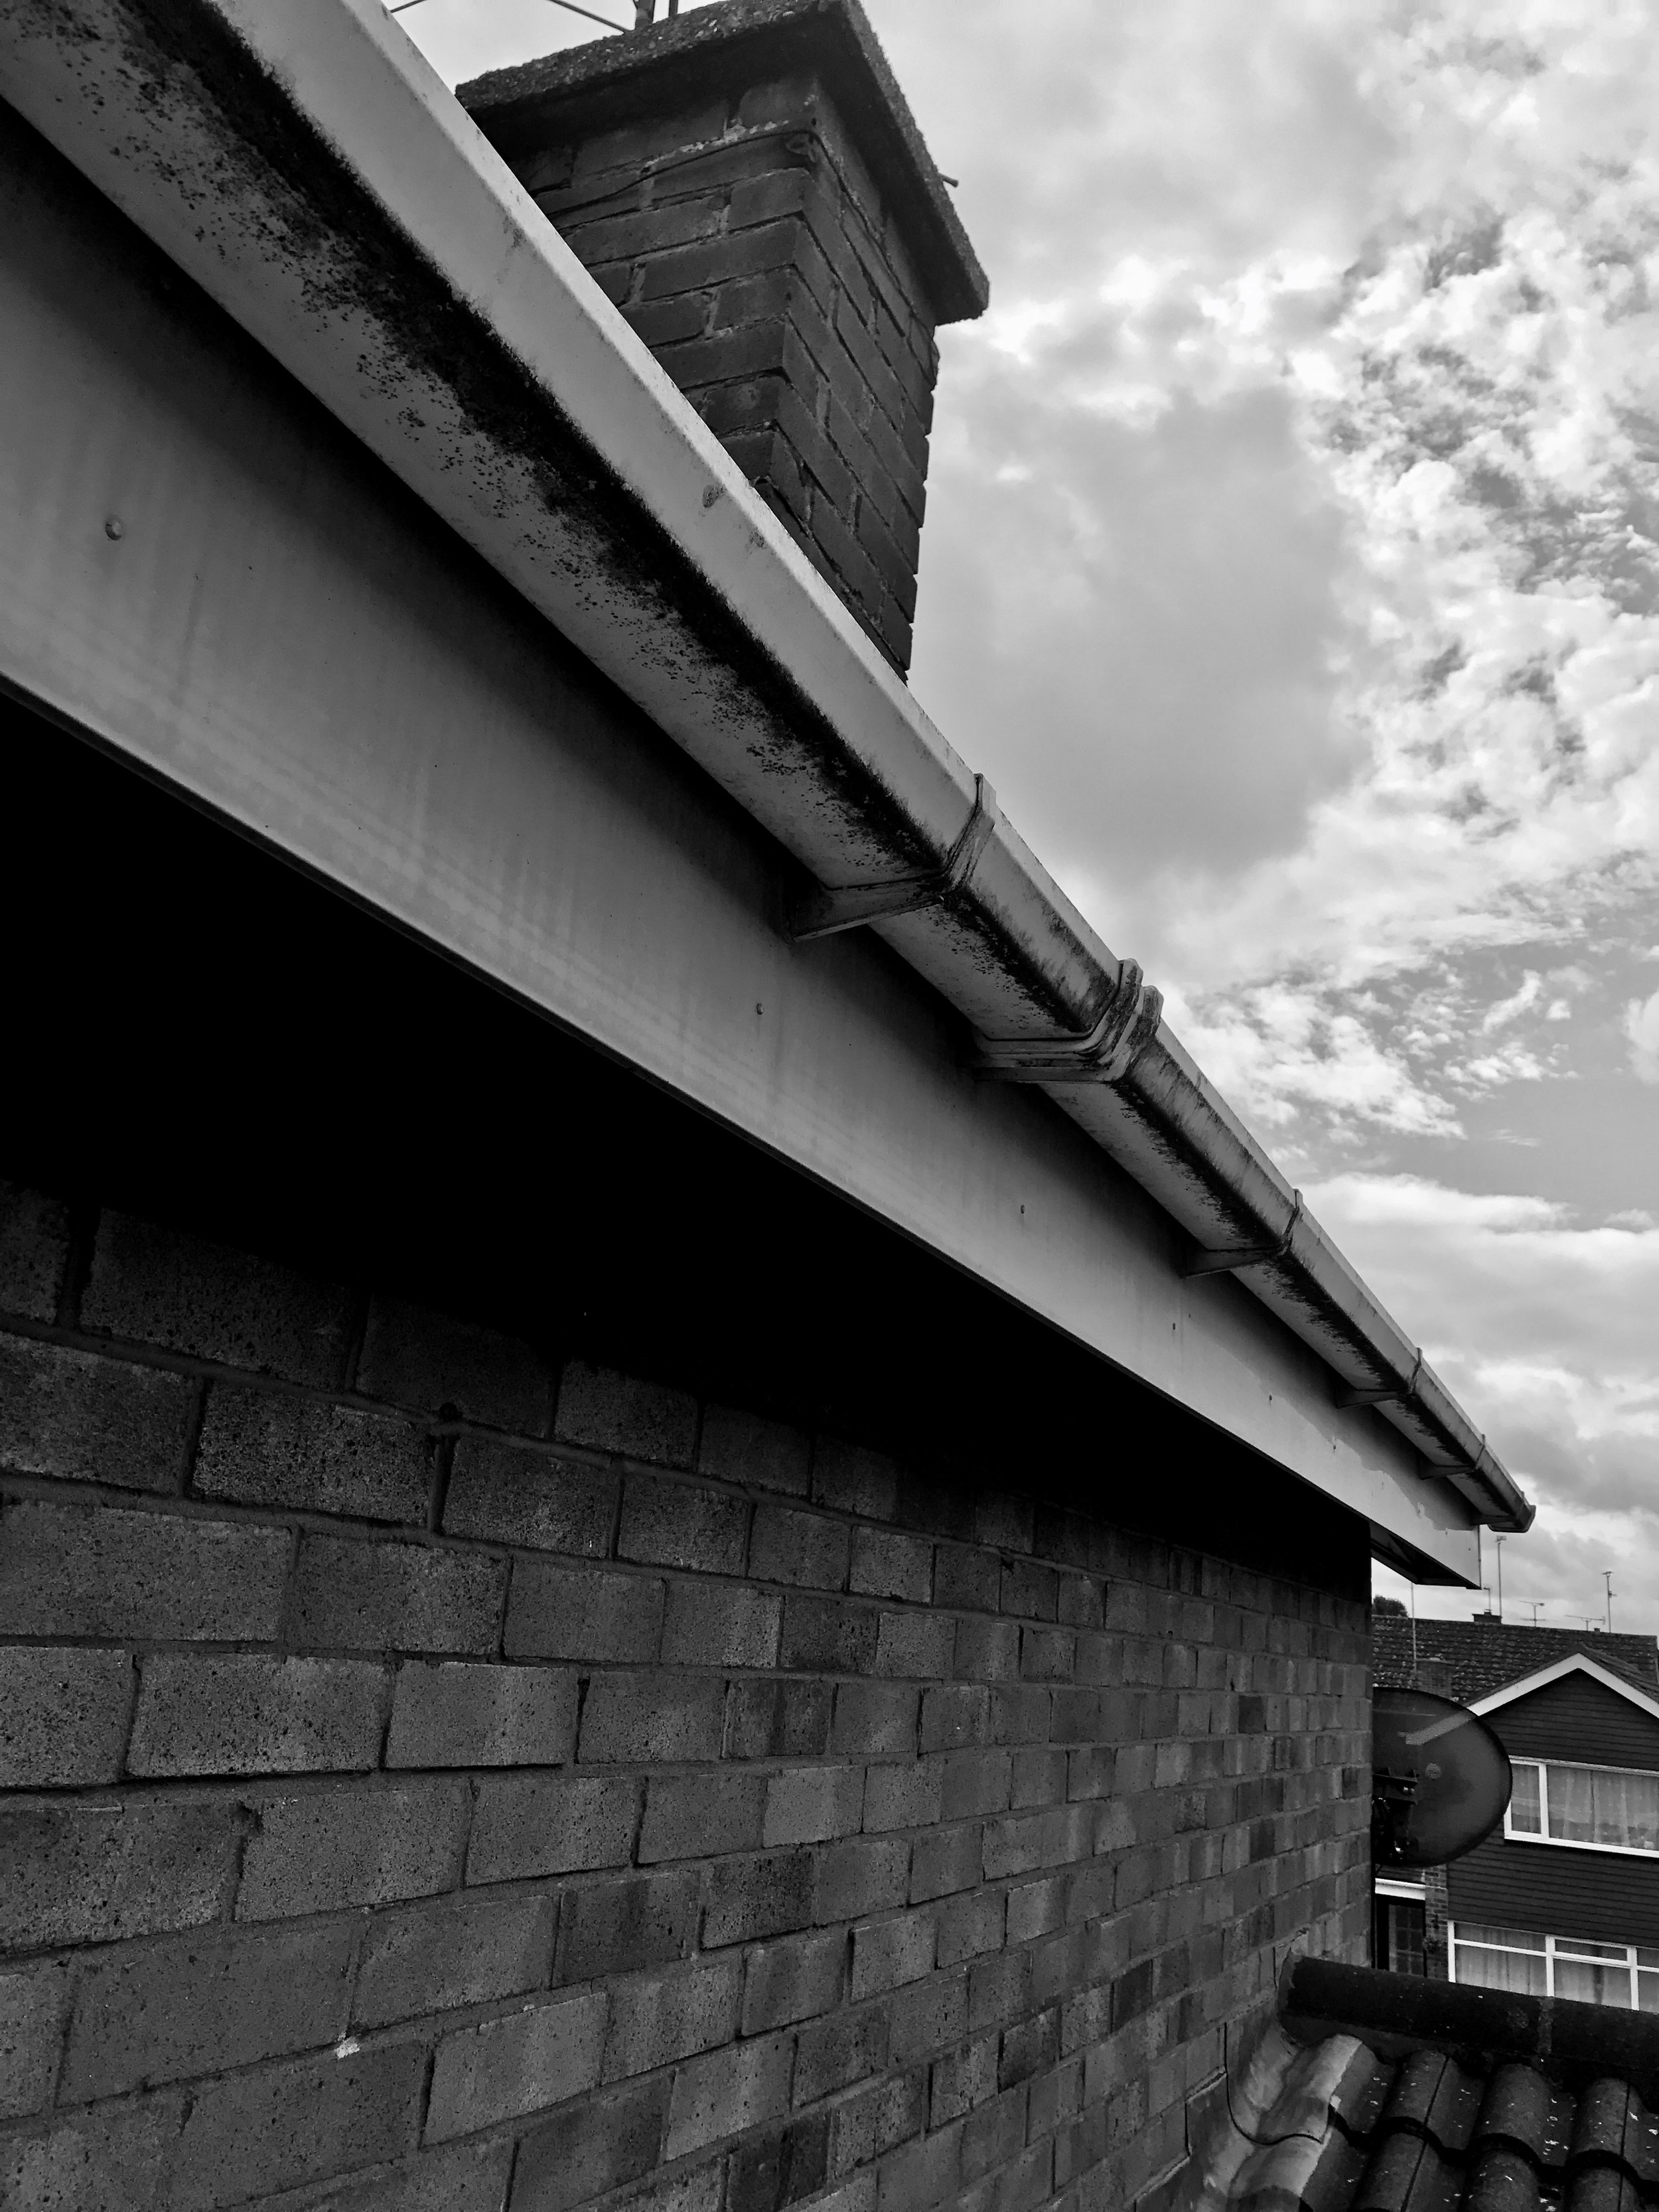 FSG cleaning - Have you had a build up of dirt on your gutters and fascias? Do they look faded, or green with dirt? Using eco friendly chemicals we can restore your fascias and soffits to their former glory, almost always looking as good as new!